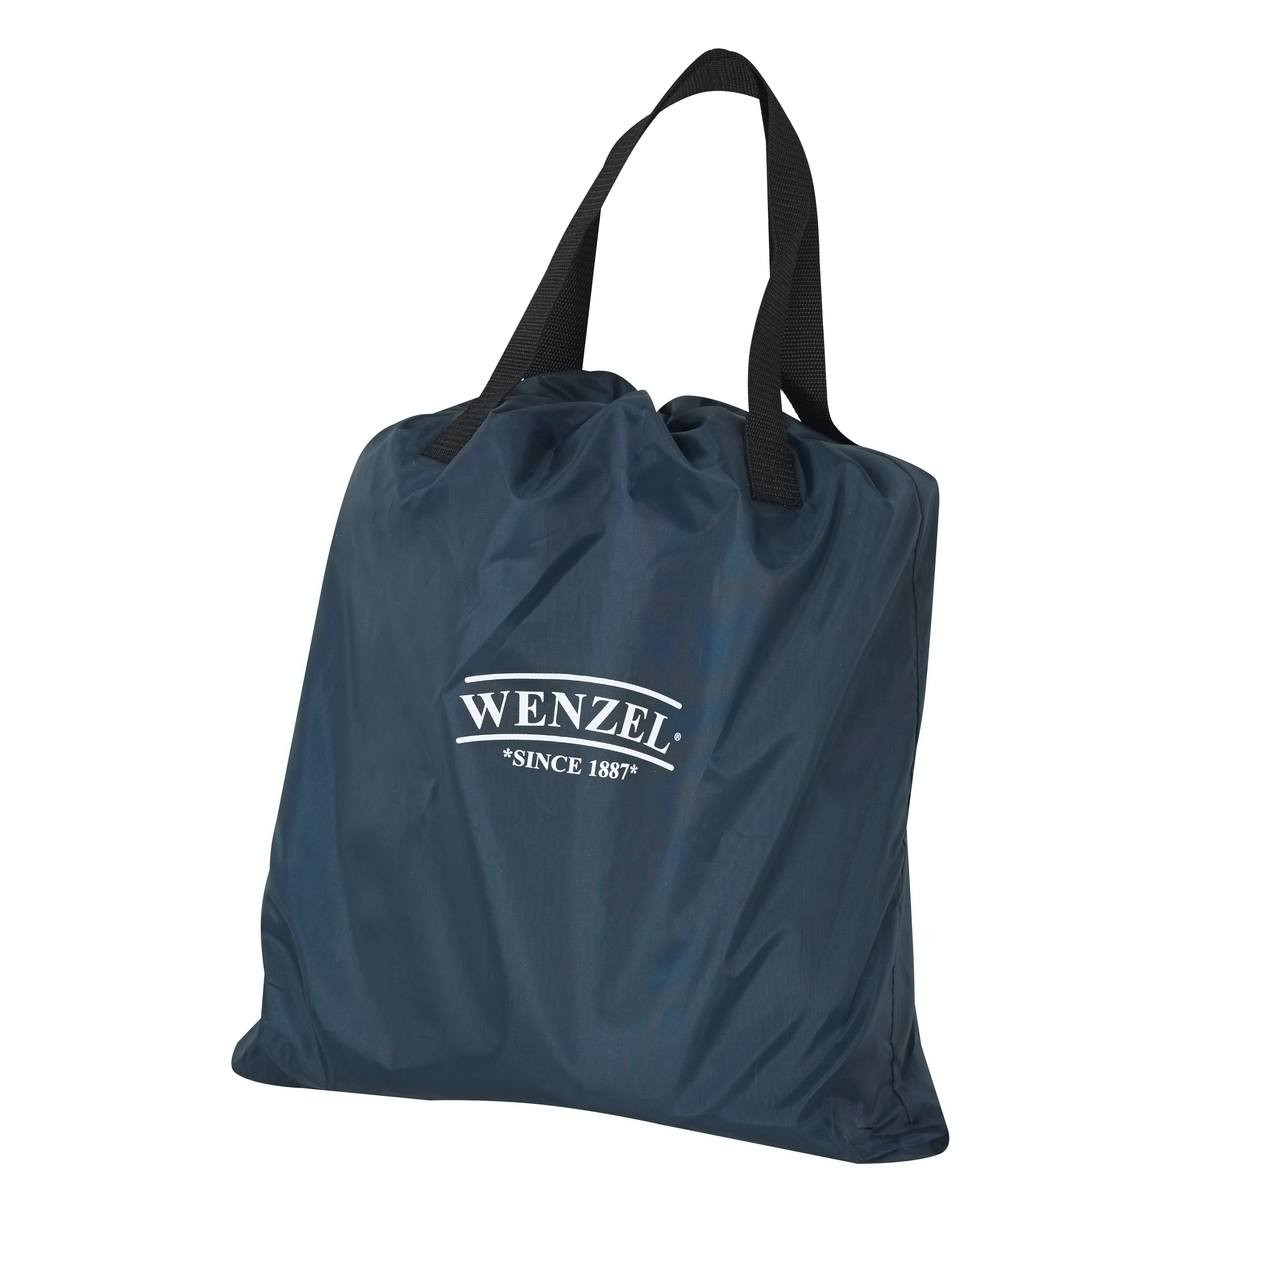 Wenzel Sleep-Away Airbed - Full deflated and stored in the blue storage bag